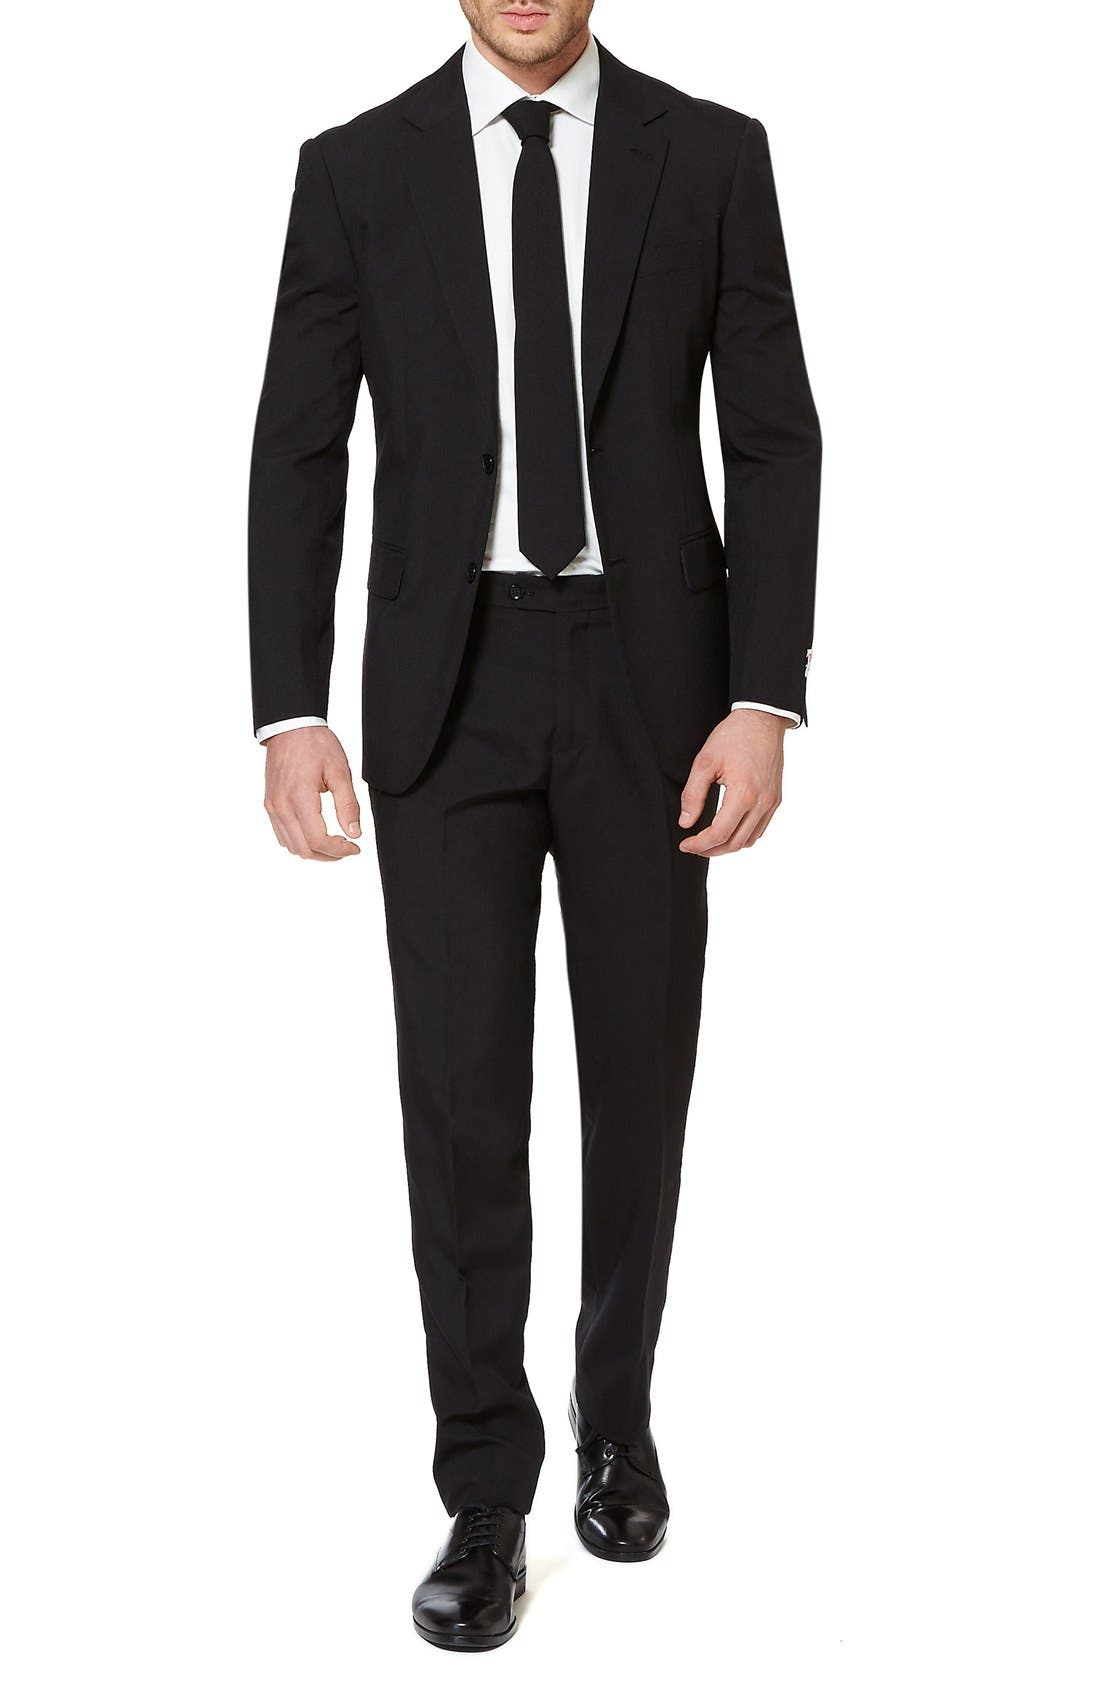 OppoSuits 'Black Knight' Trim Fit Two-Piece Suit with Tie